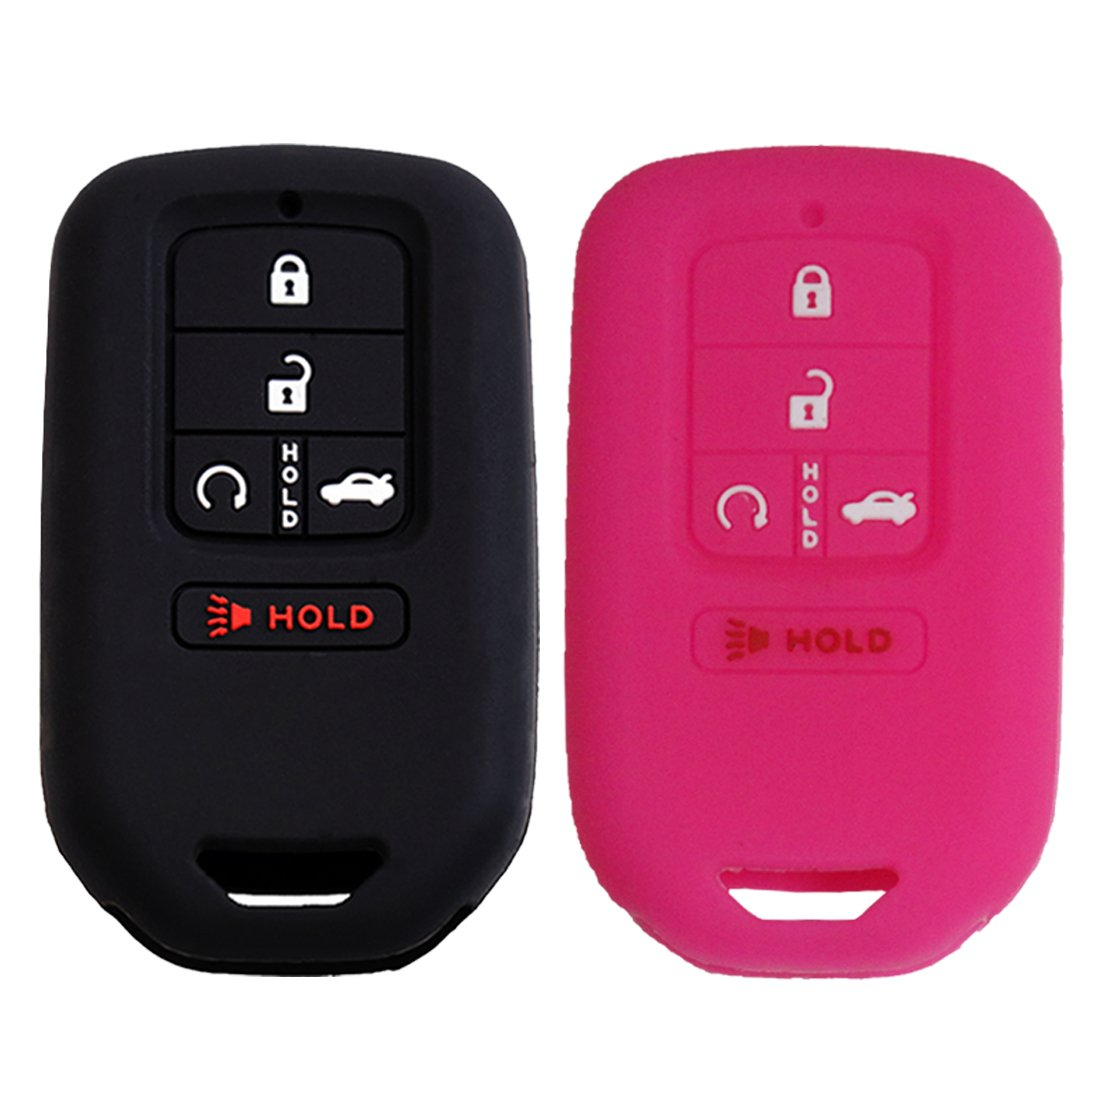 Keyless4U 2Pcs Silicone Key Fob Full Case Cover Protector Remote Skin for A2C81642600 2015 2016 2017 2018 2019 Honda Accord Civic CR-V CRV Pilot EX-L Touring Premium 5 Buttons smart key Black